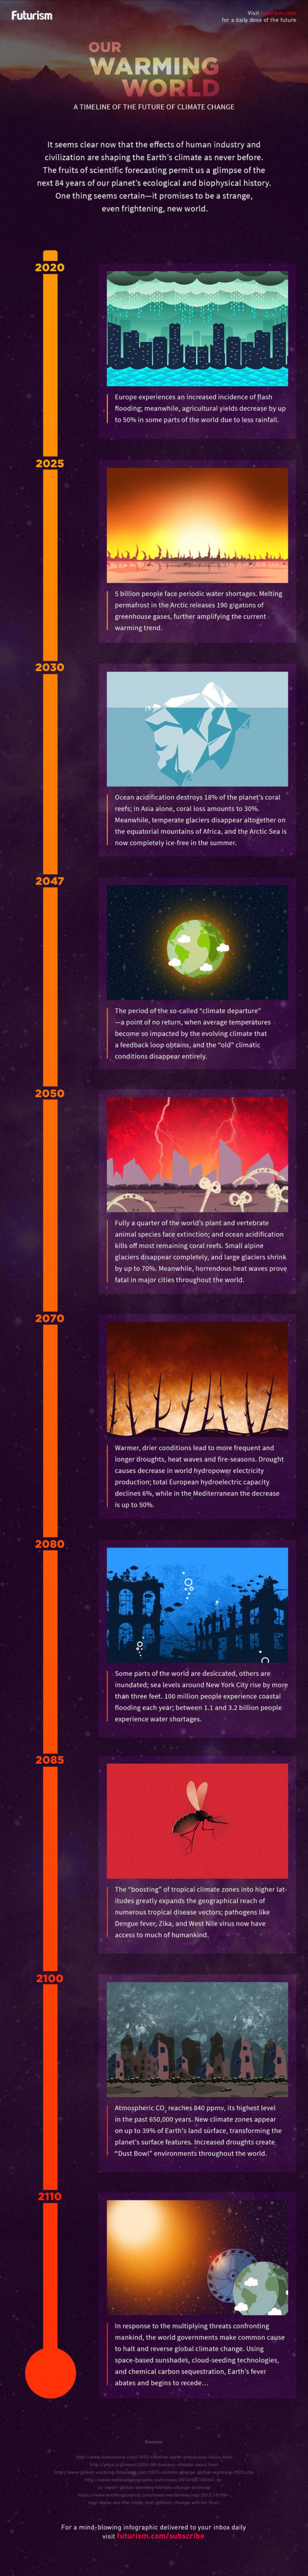 Our Warming World - infographic